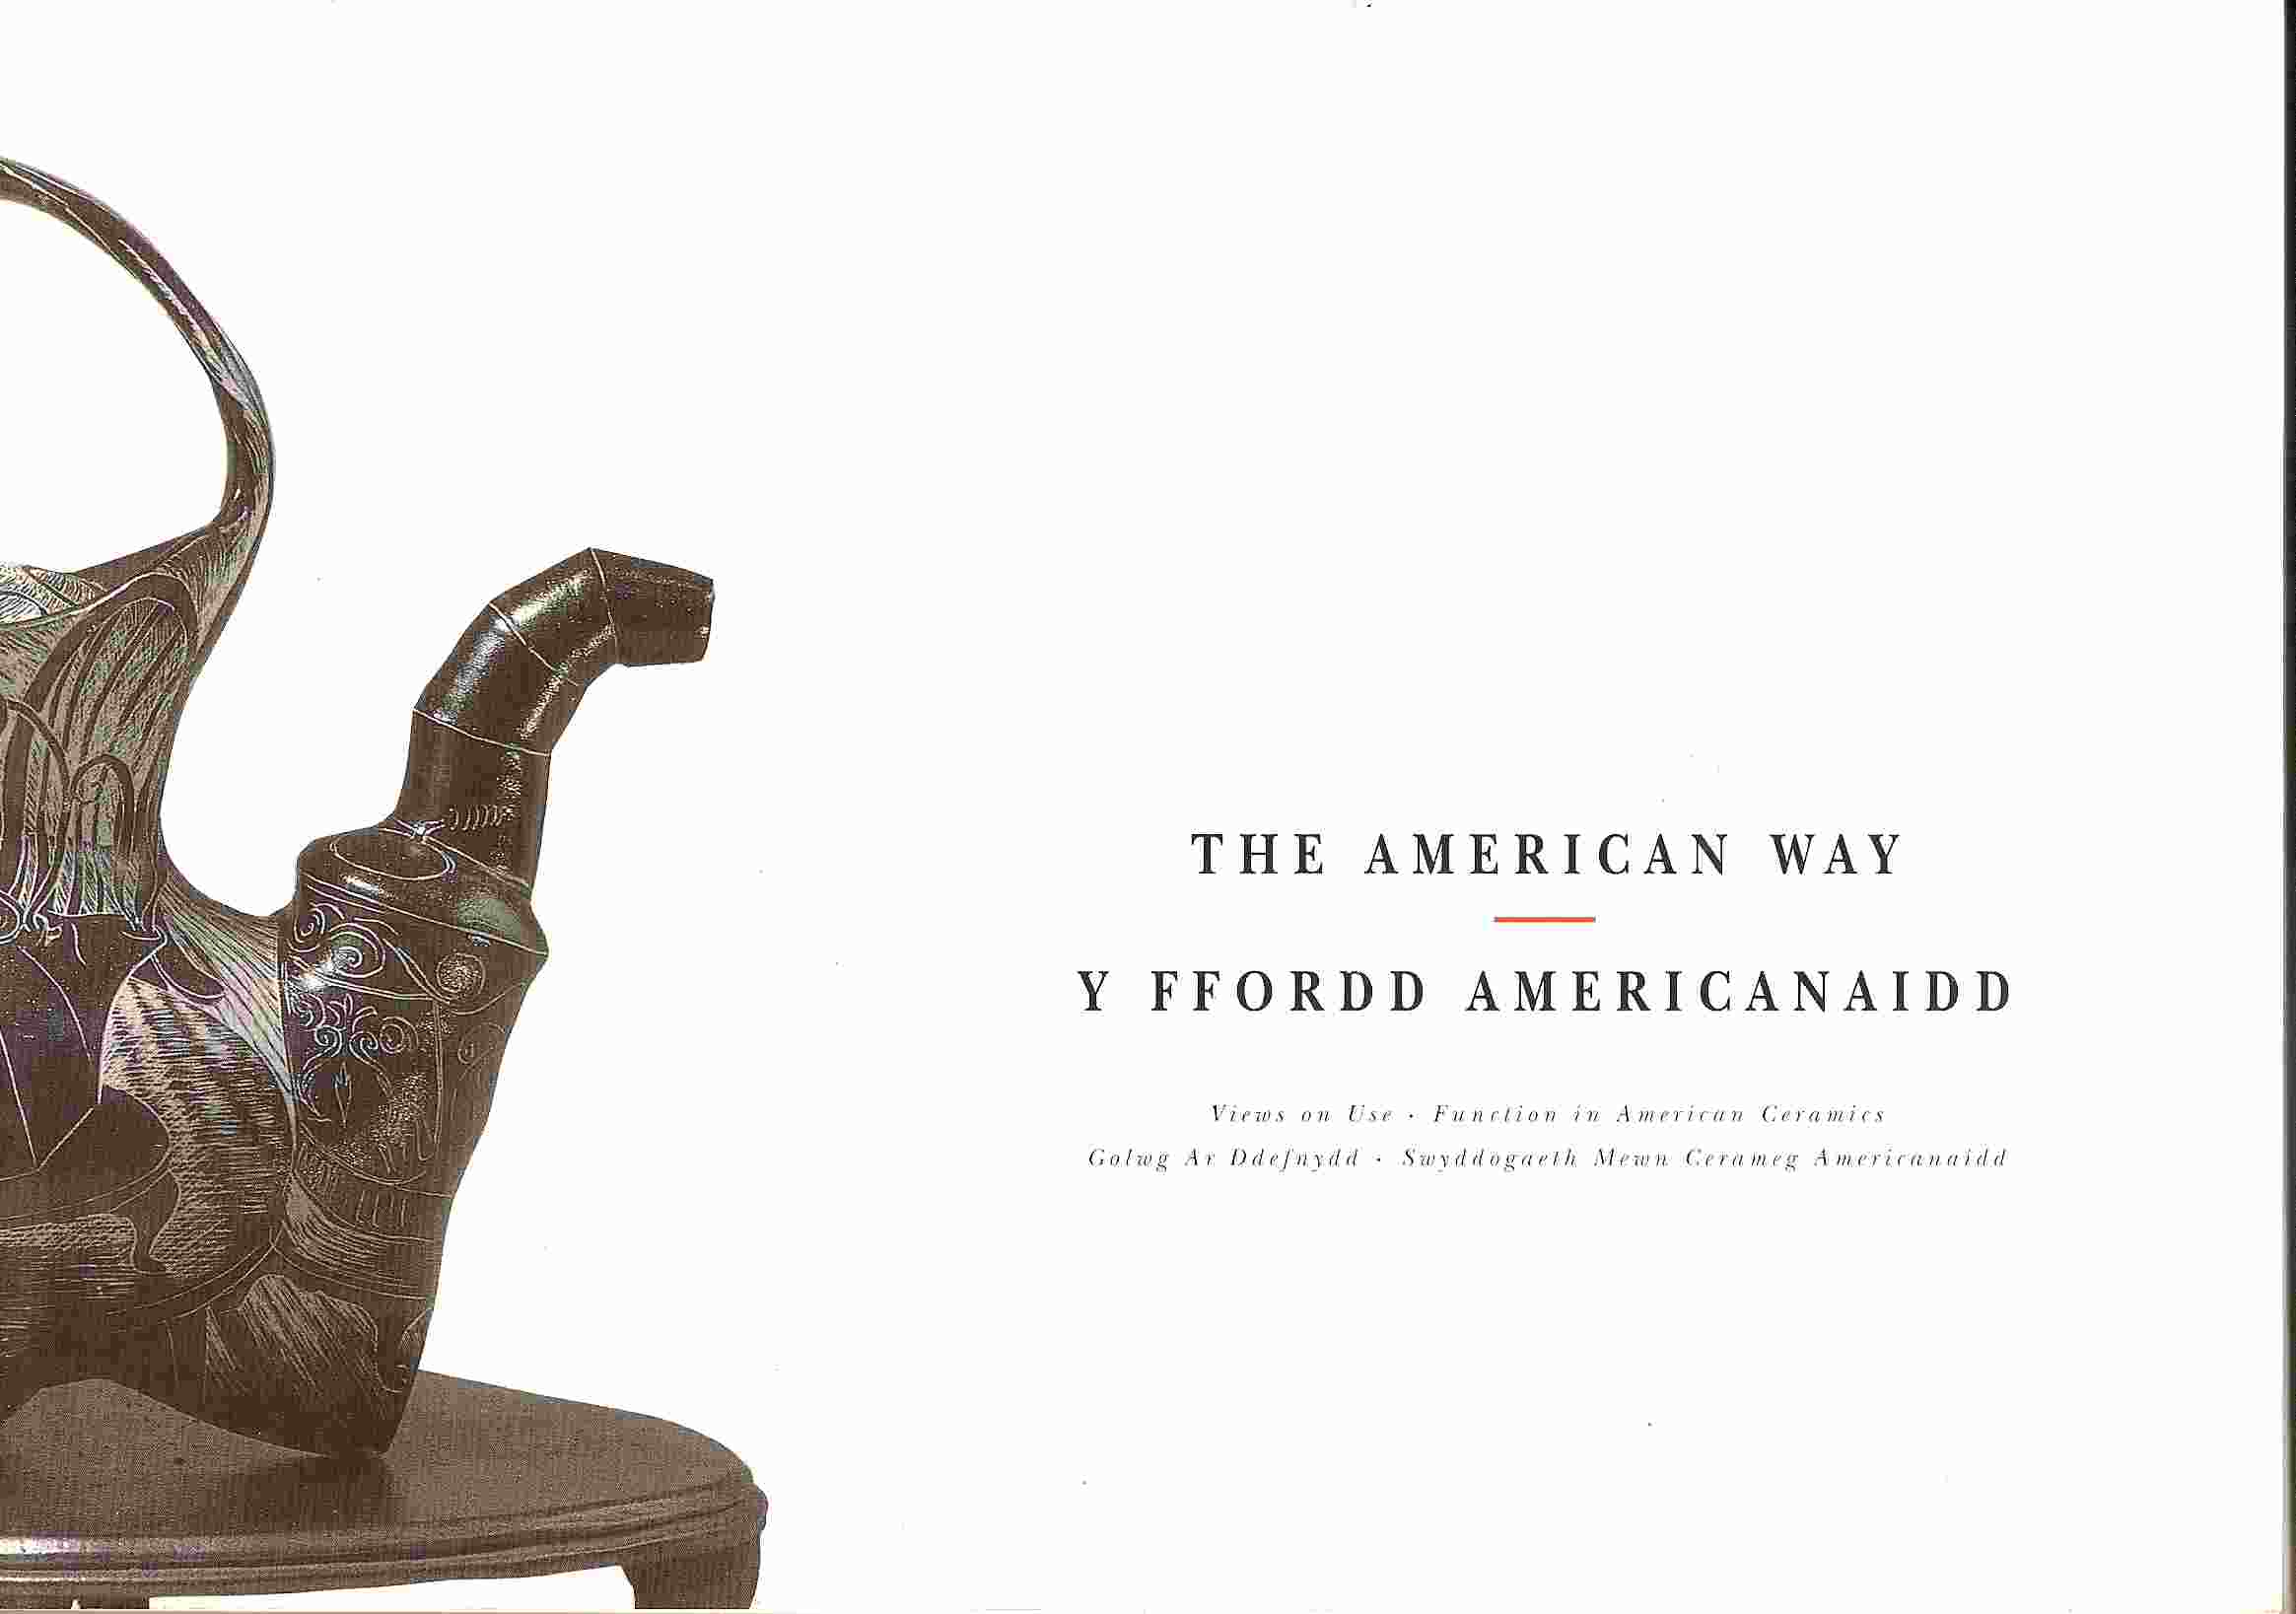 Image for Views on Use, Function in American Ceramics; THE AMERICAN WAY: Y FFORDD AMERICANAIDD